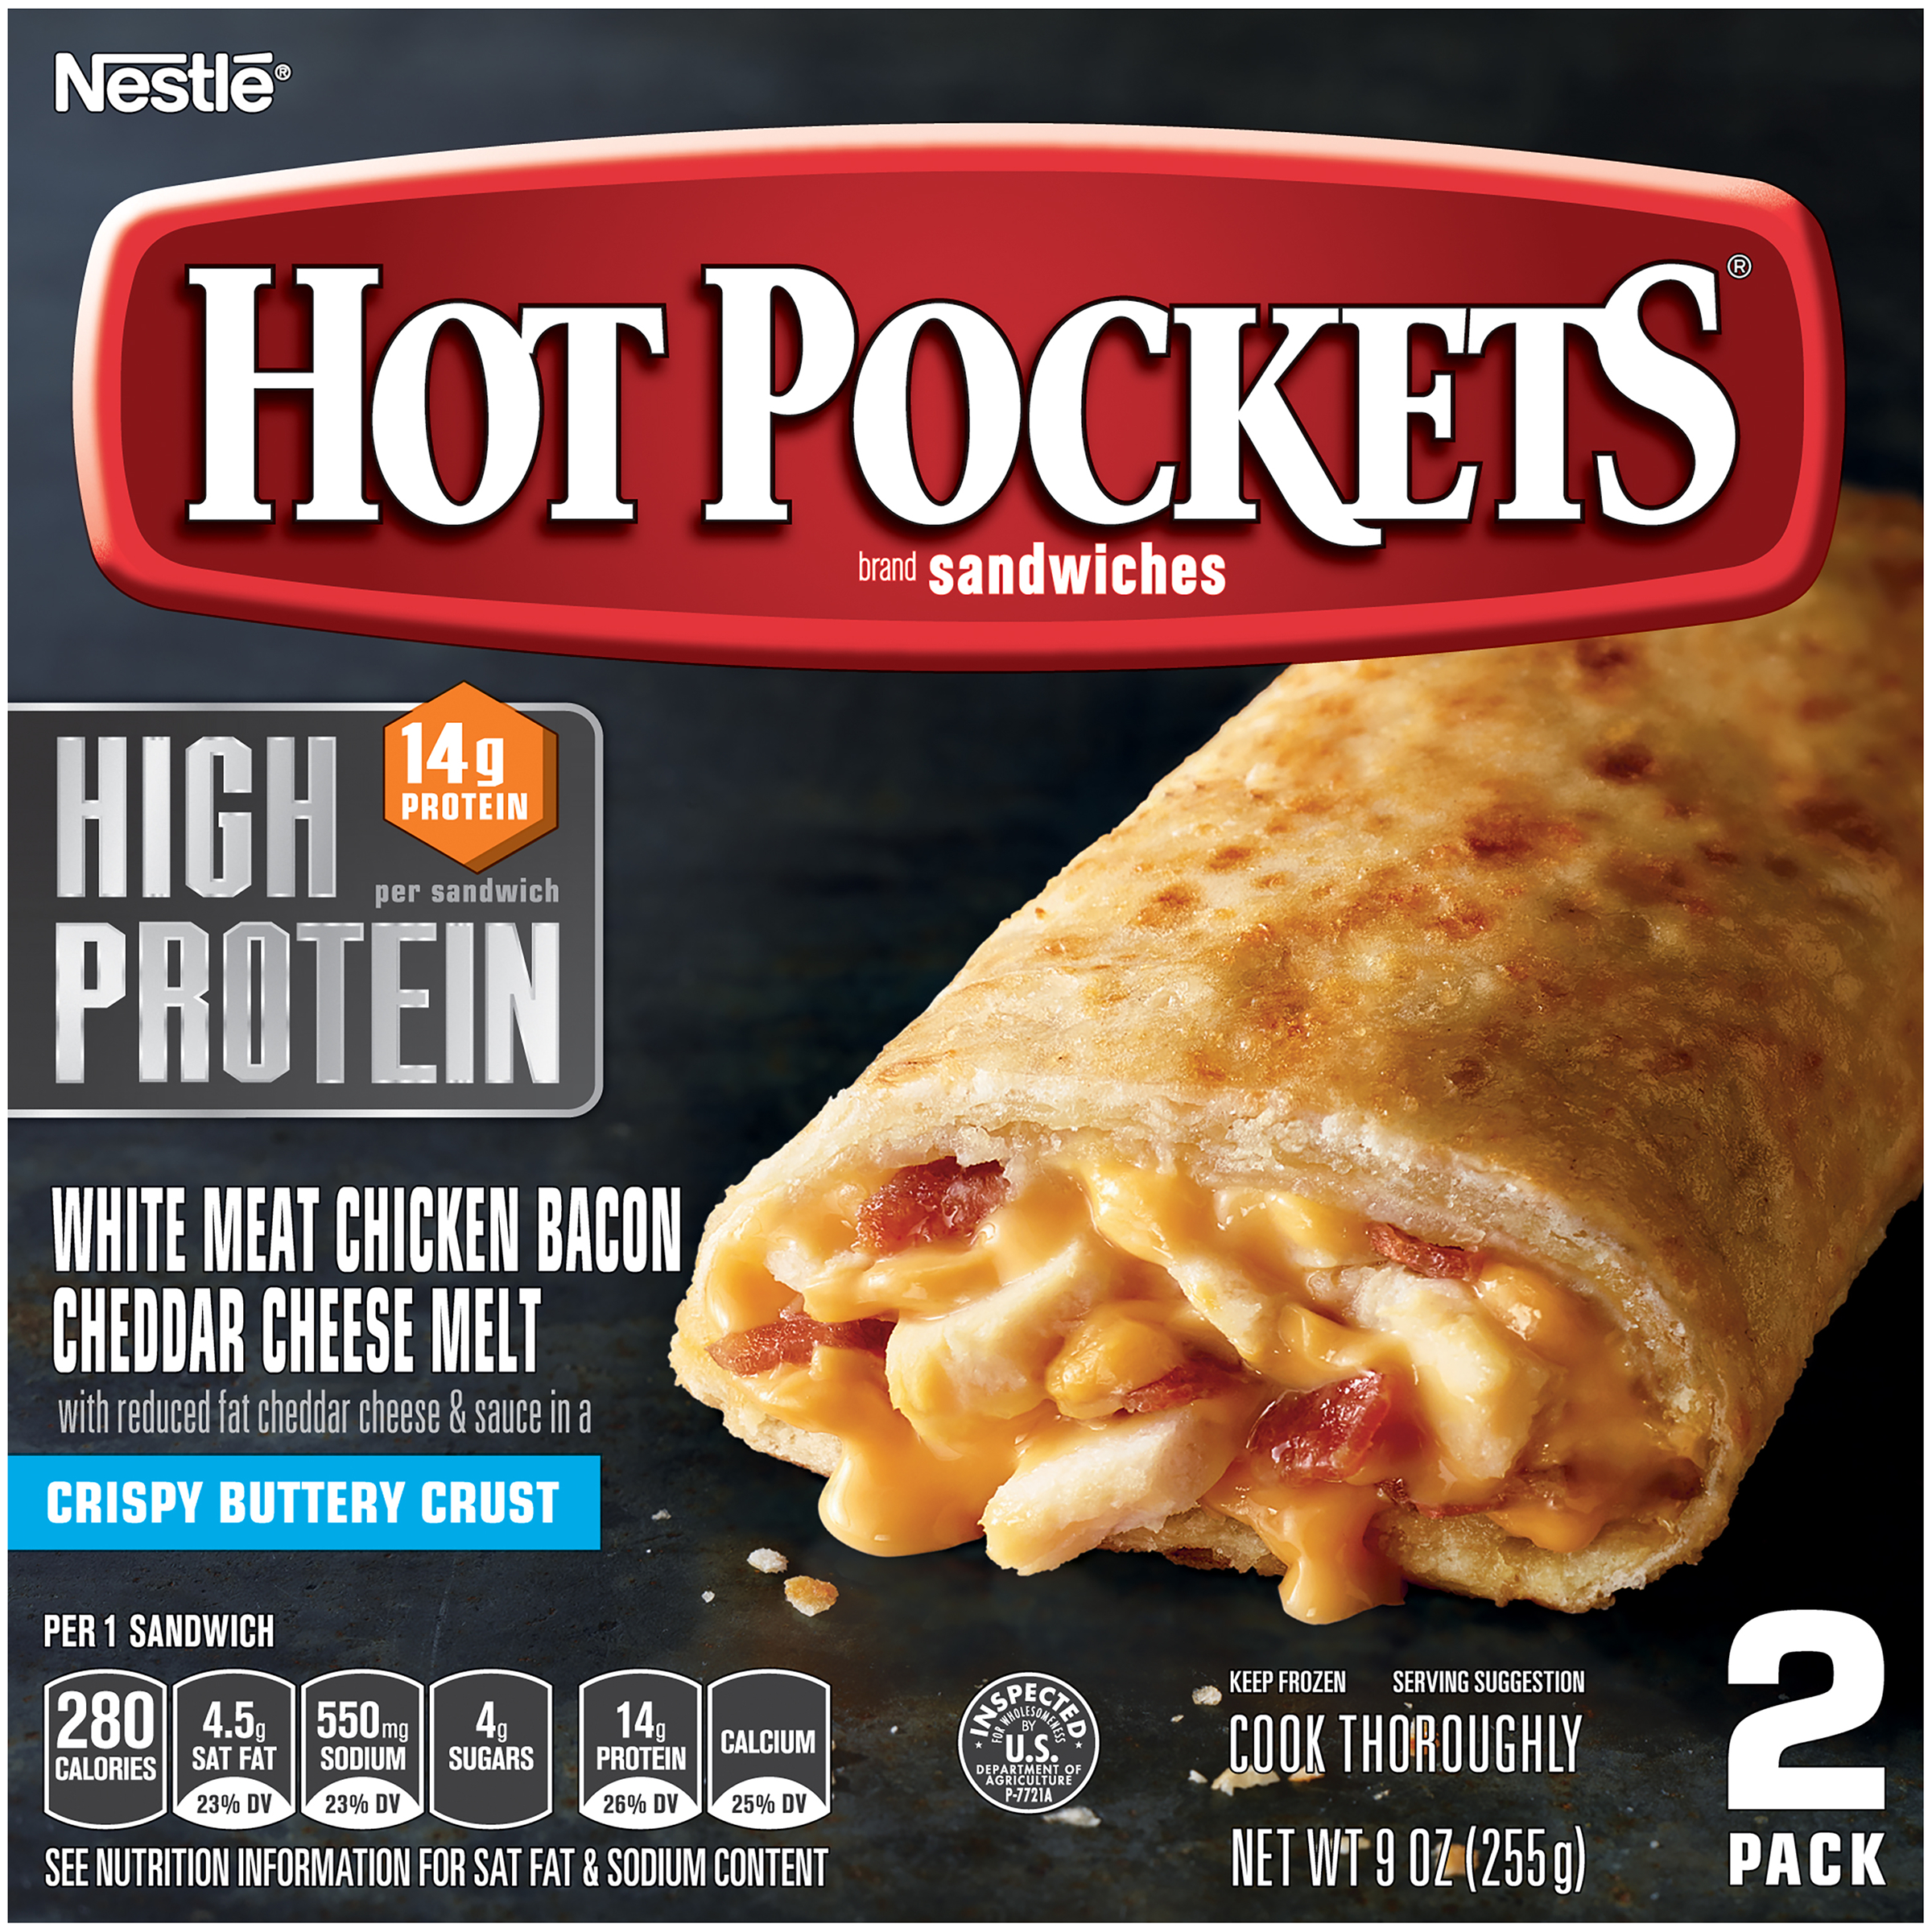 HOT POCKETS Chicken Bacon and Cheddar Cheese Melt Sandwiches – Hot Pockets Frozen Sandwiches with No Artificial Flavors and 14g of Protein, 2 Pack